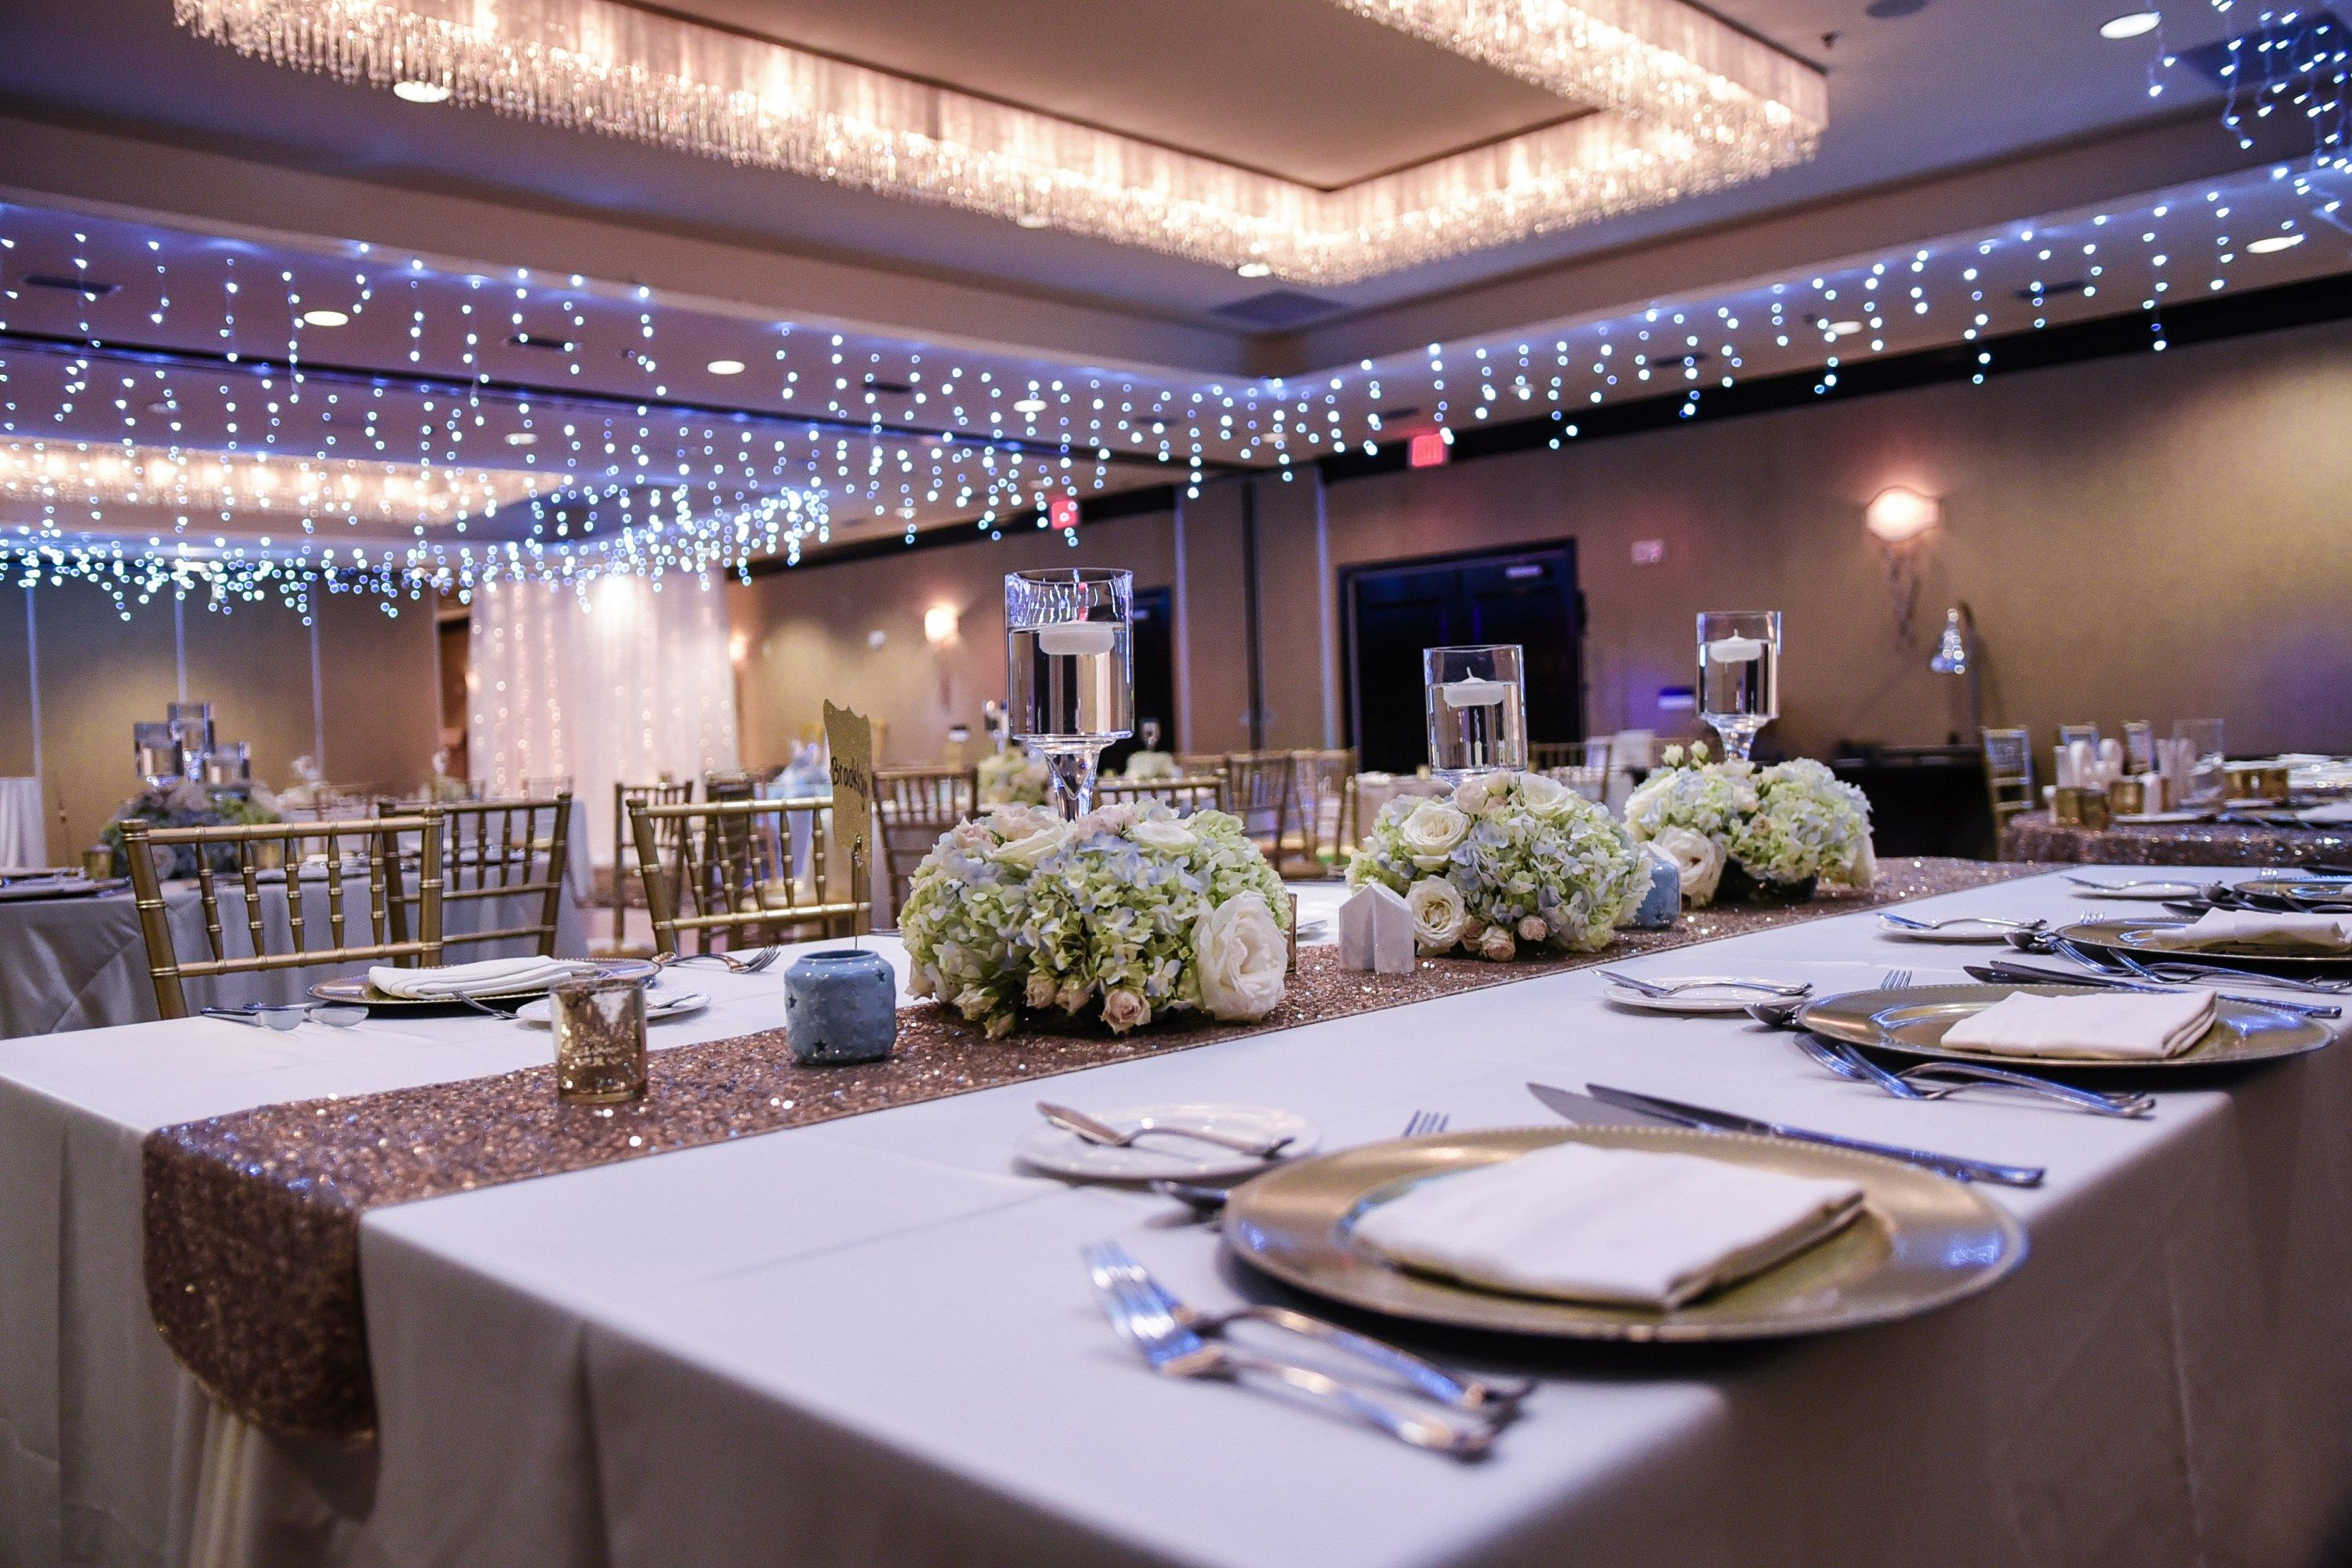 Wedding Reception At One Ocean Resort In Jacksonville Fl Decor Als Decorations